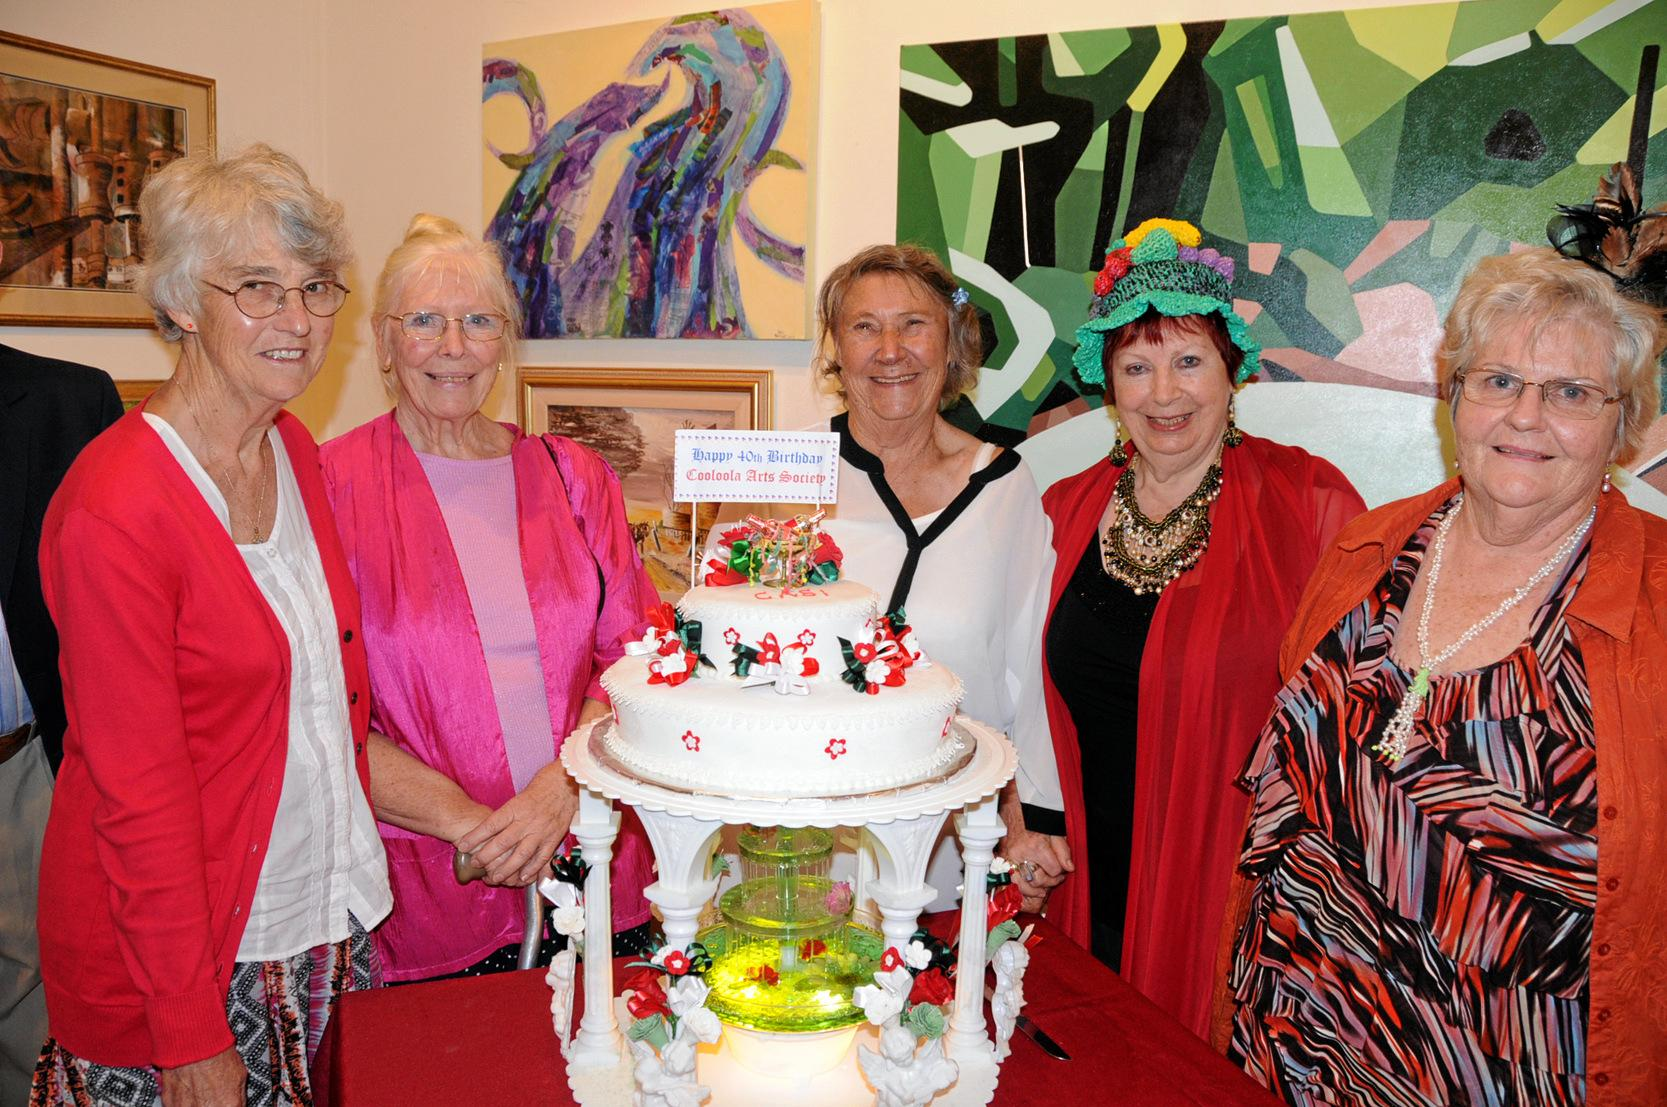 Cooloola Arts Society 40 year celebration with the Queensland Governor. Art Society members admire the celebratory cake made by Deana Liddle.  Yvonne Manger, Cecile Steenbergen, Lee McGruer, Violette Jameson OAM, Lyn Ballantyne. Photo Tanya Easterby / Gympie Times